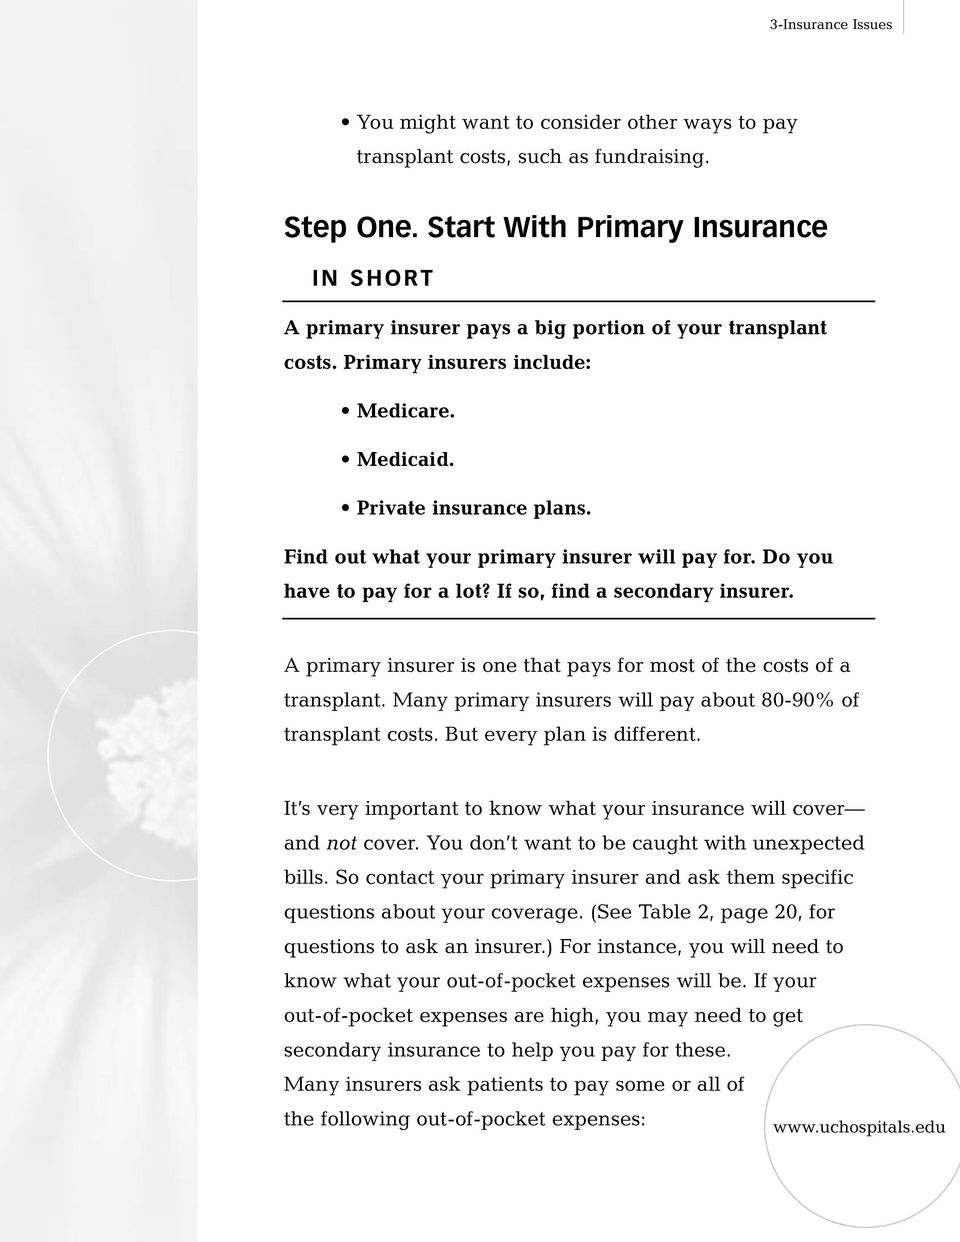 Find out what your primary insurer will pay for. Do you have to pay for a lot? If so, find a secondary insurer. A primary insurer is one that pays for most of the costs of a transplant.